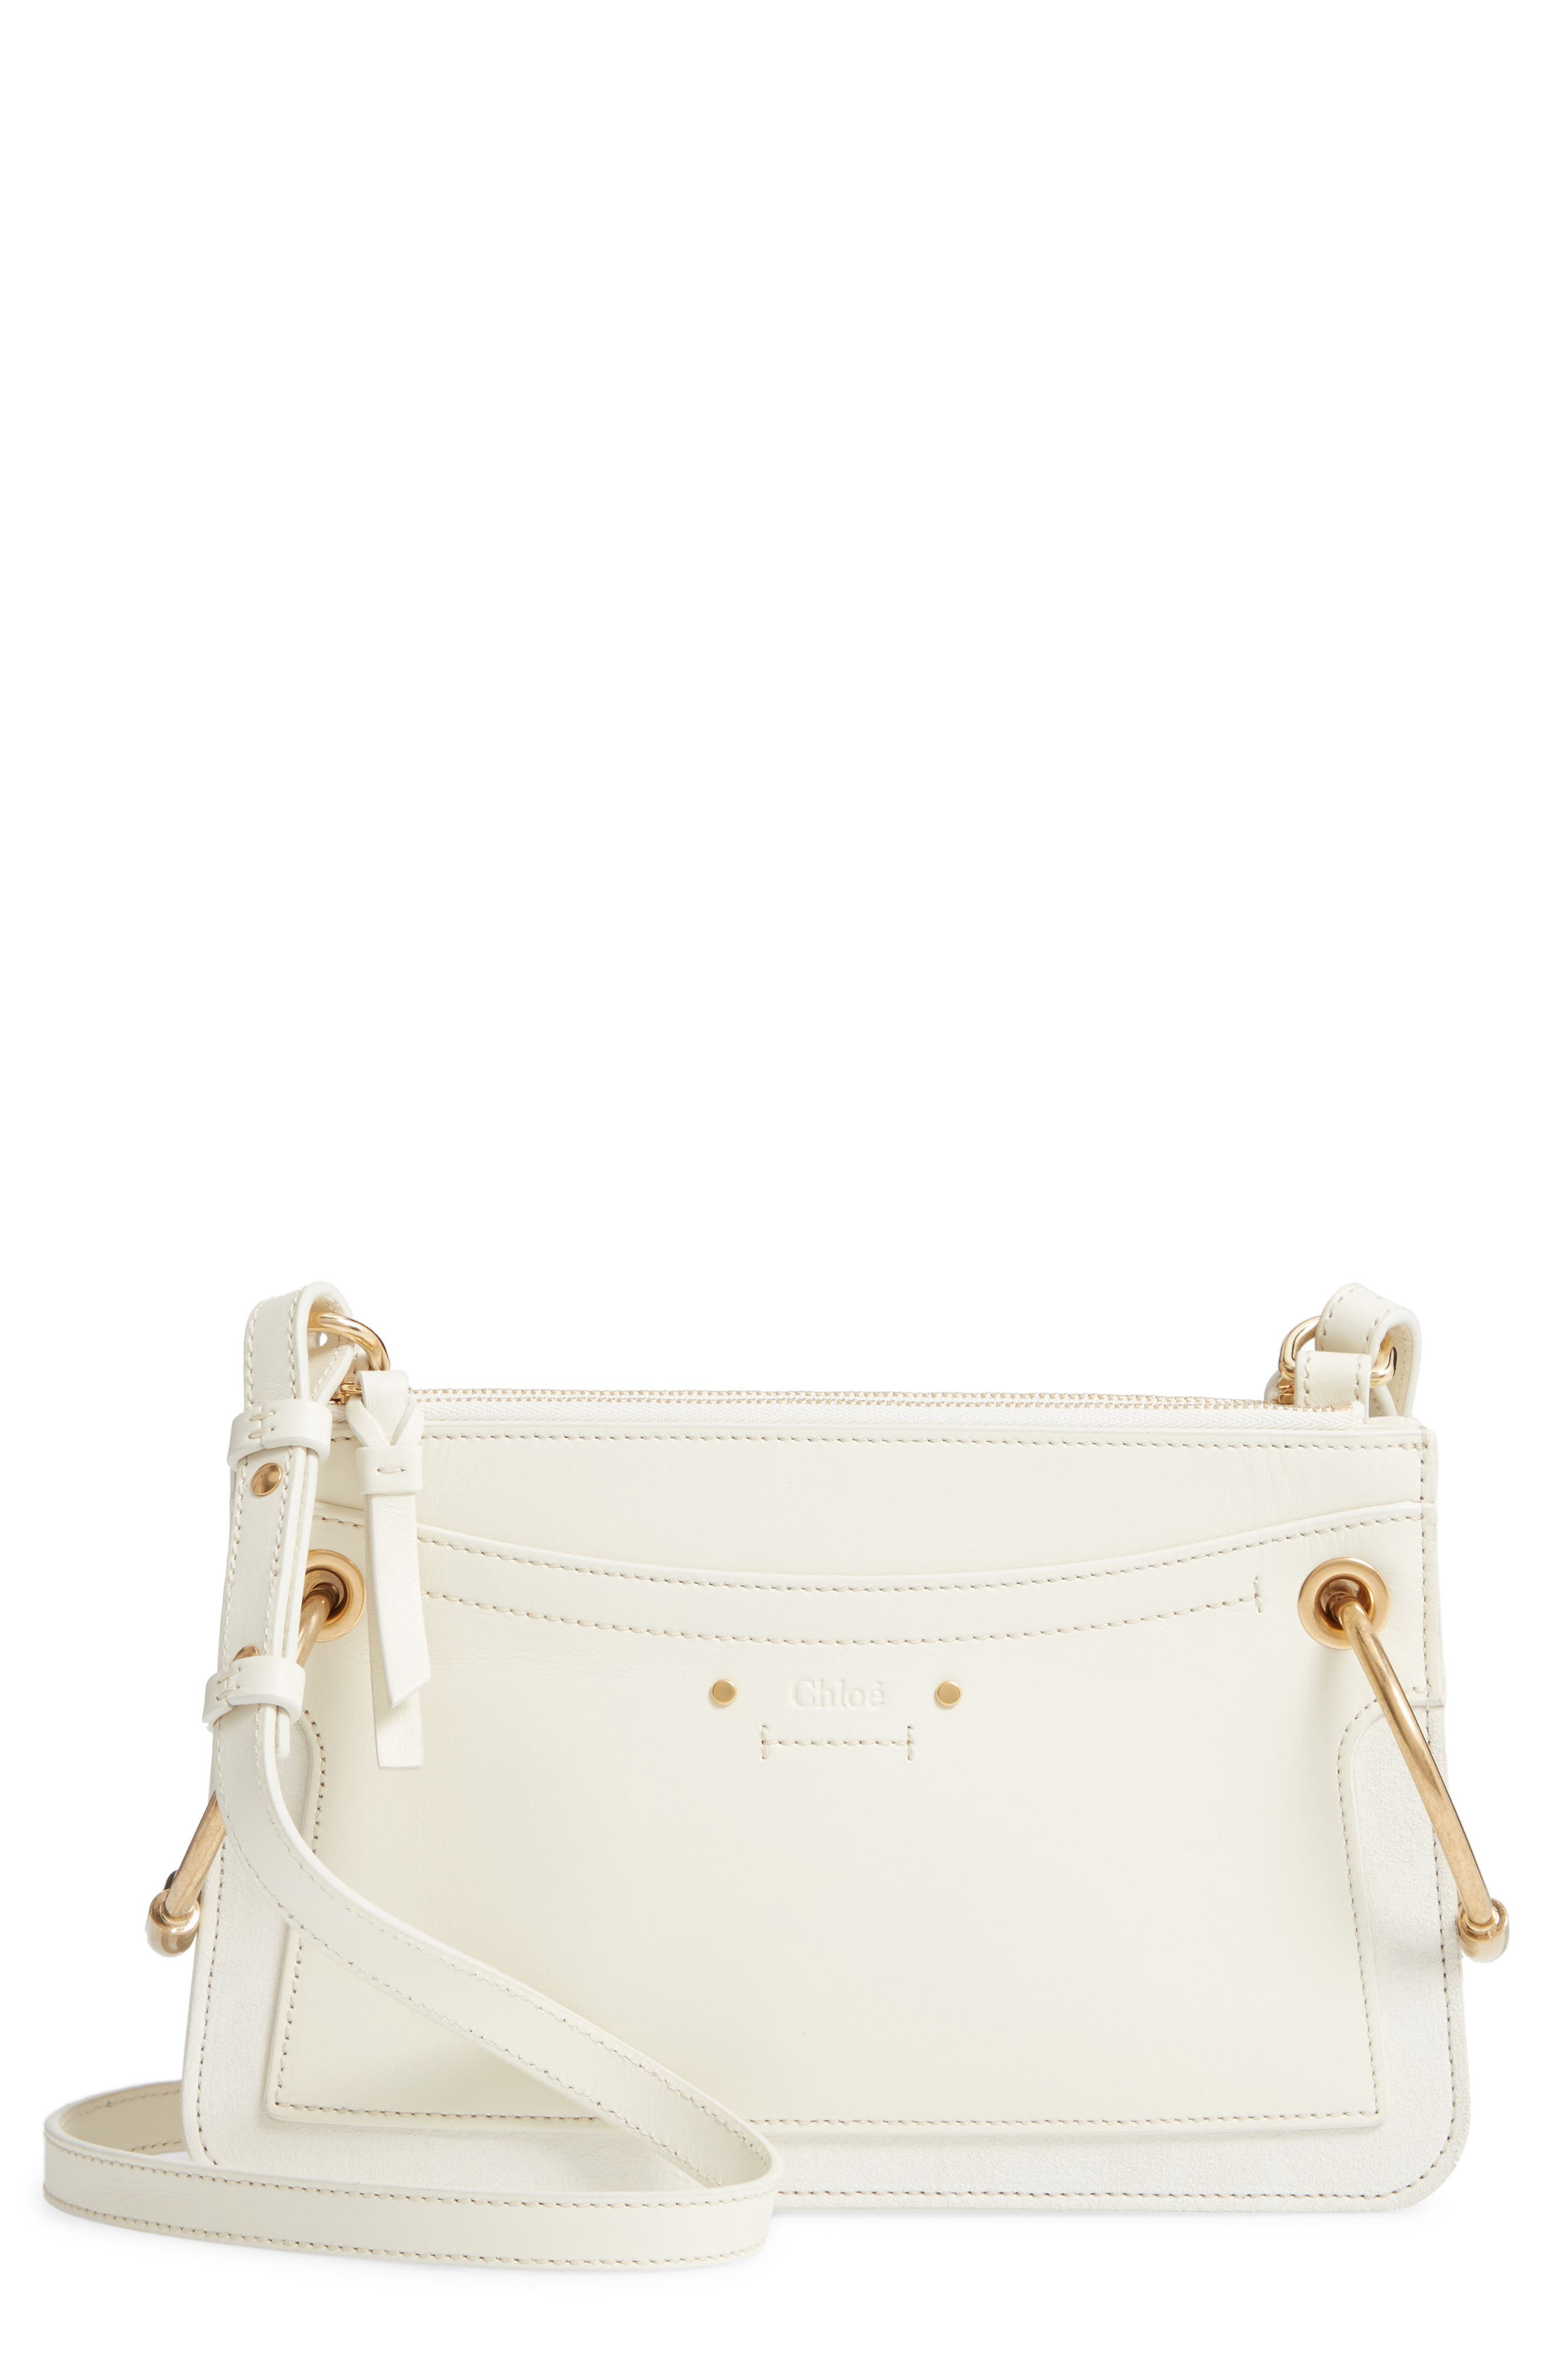 CHLOÉ Small Roy Leather Shoulder Bag, Main, color, NATURAL WHITE